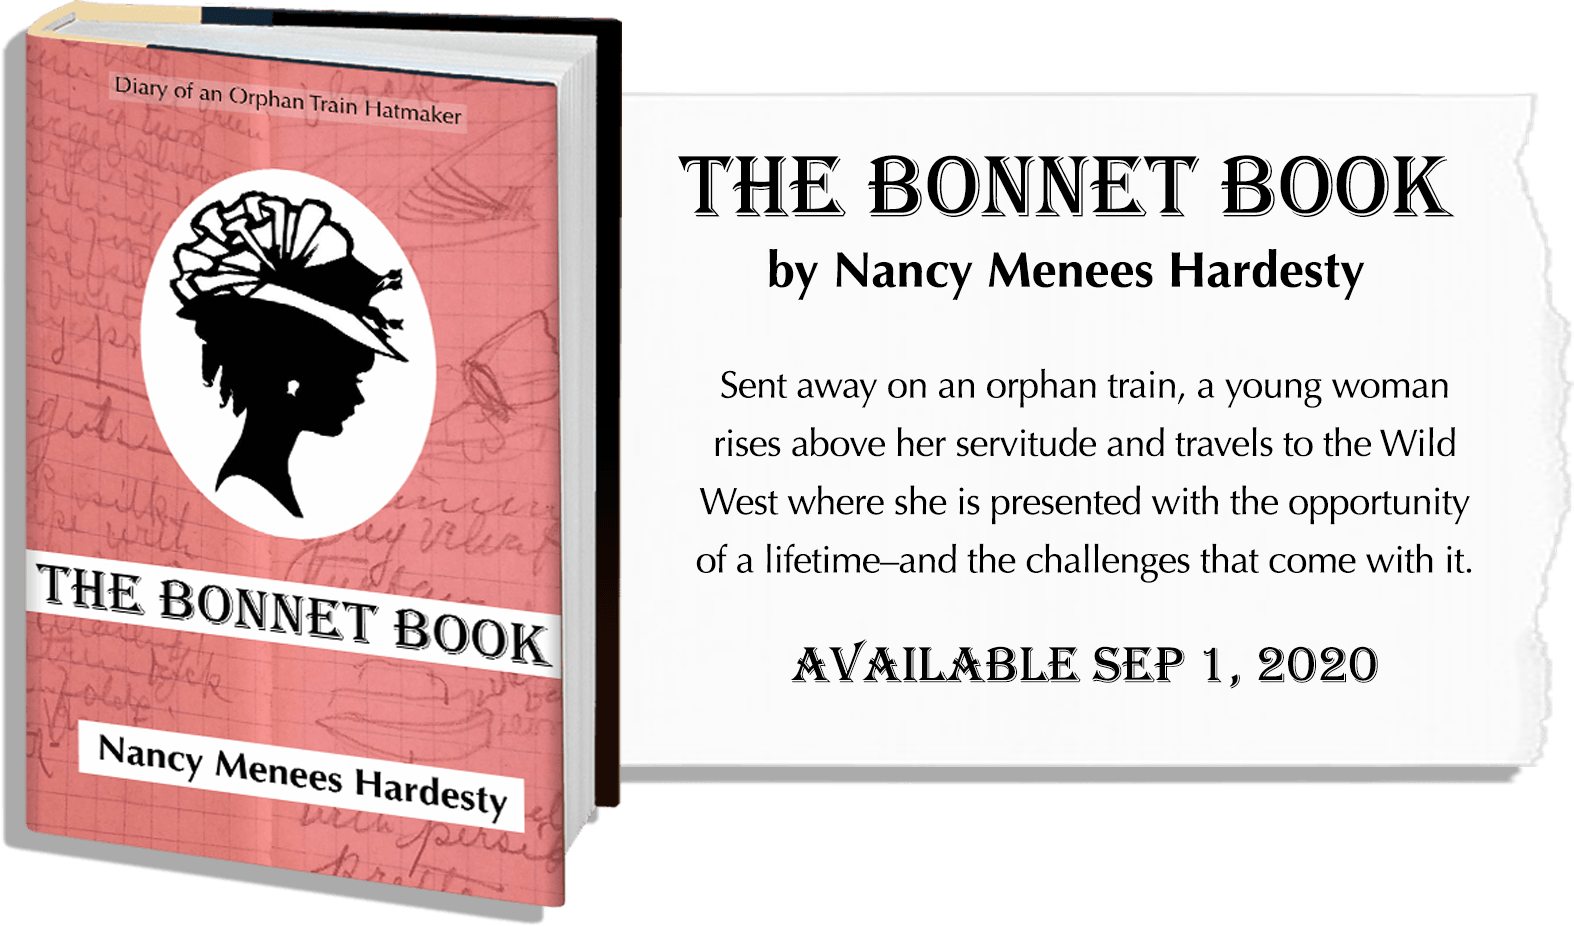 The Bonnet Book by Nancy Menees Hardesty is the story of Blanche Spencer, sent away on an orphan train at fourteen, making her way to the Wild West.